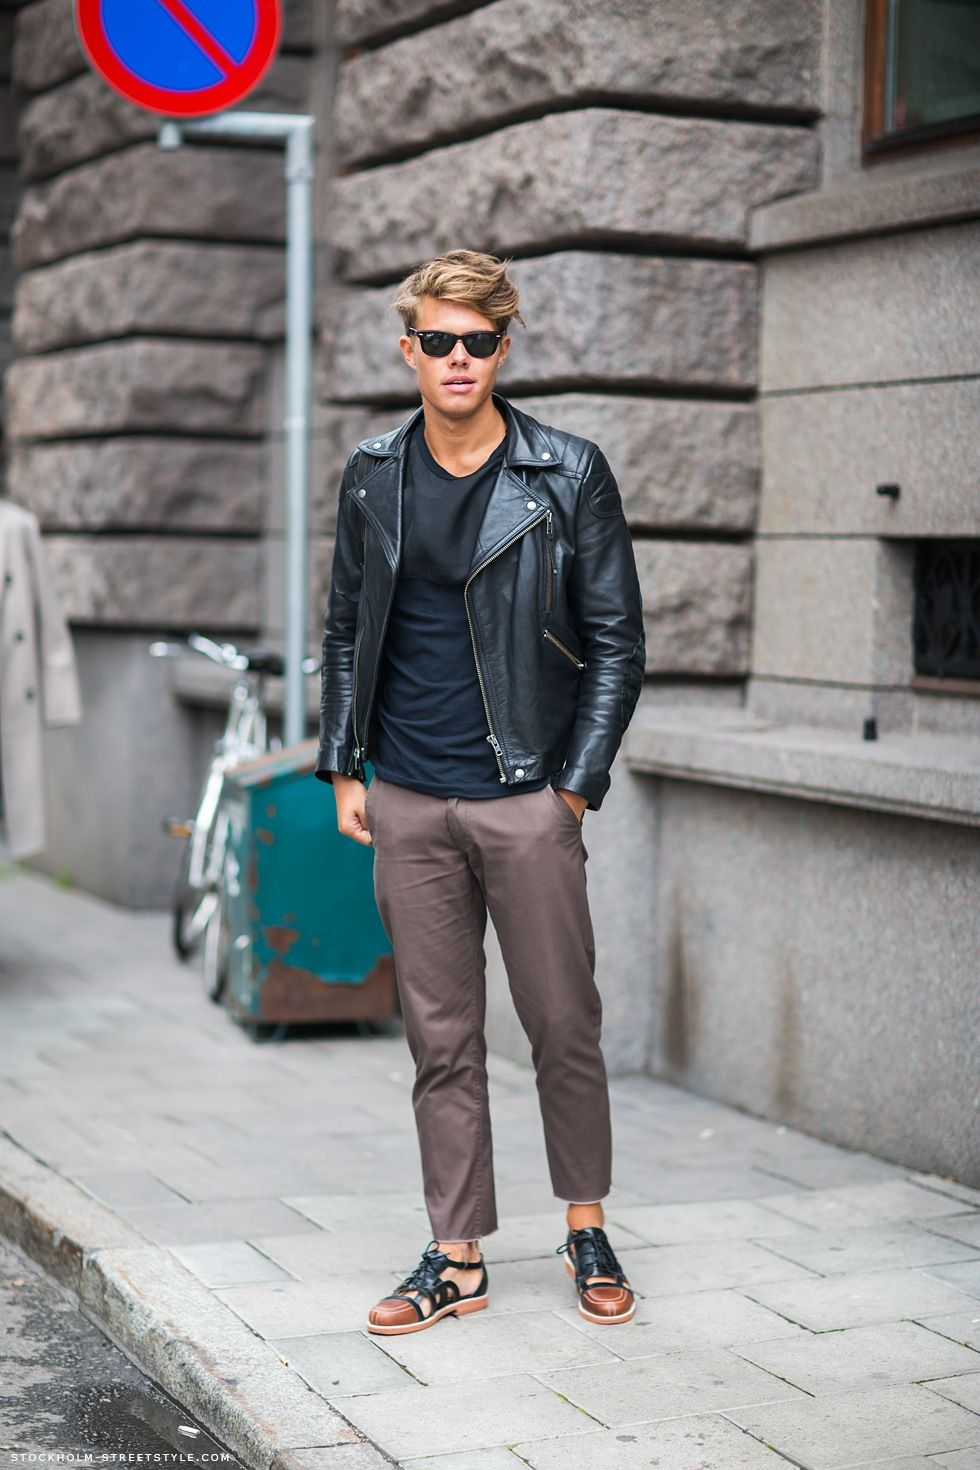 Mens-Leather-Jackets-Street-Style-2.jpg (980×1470) | S T Y L E ...